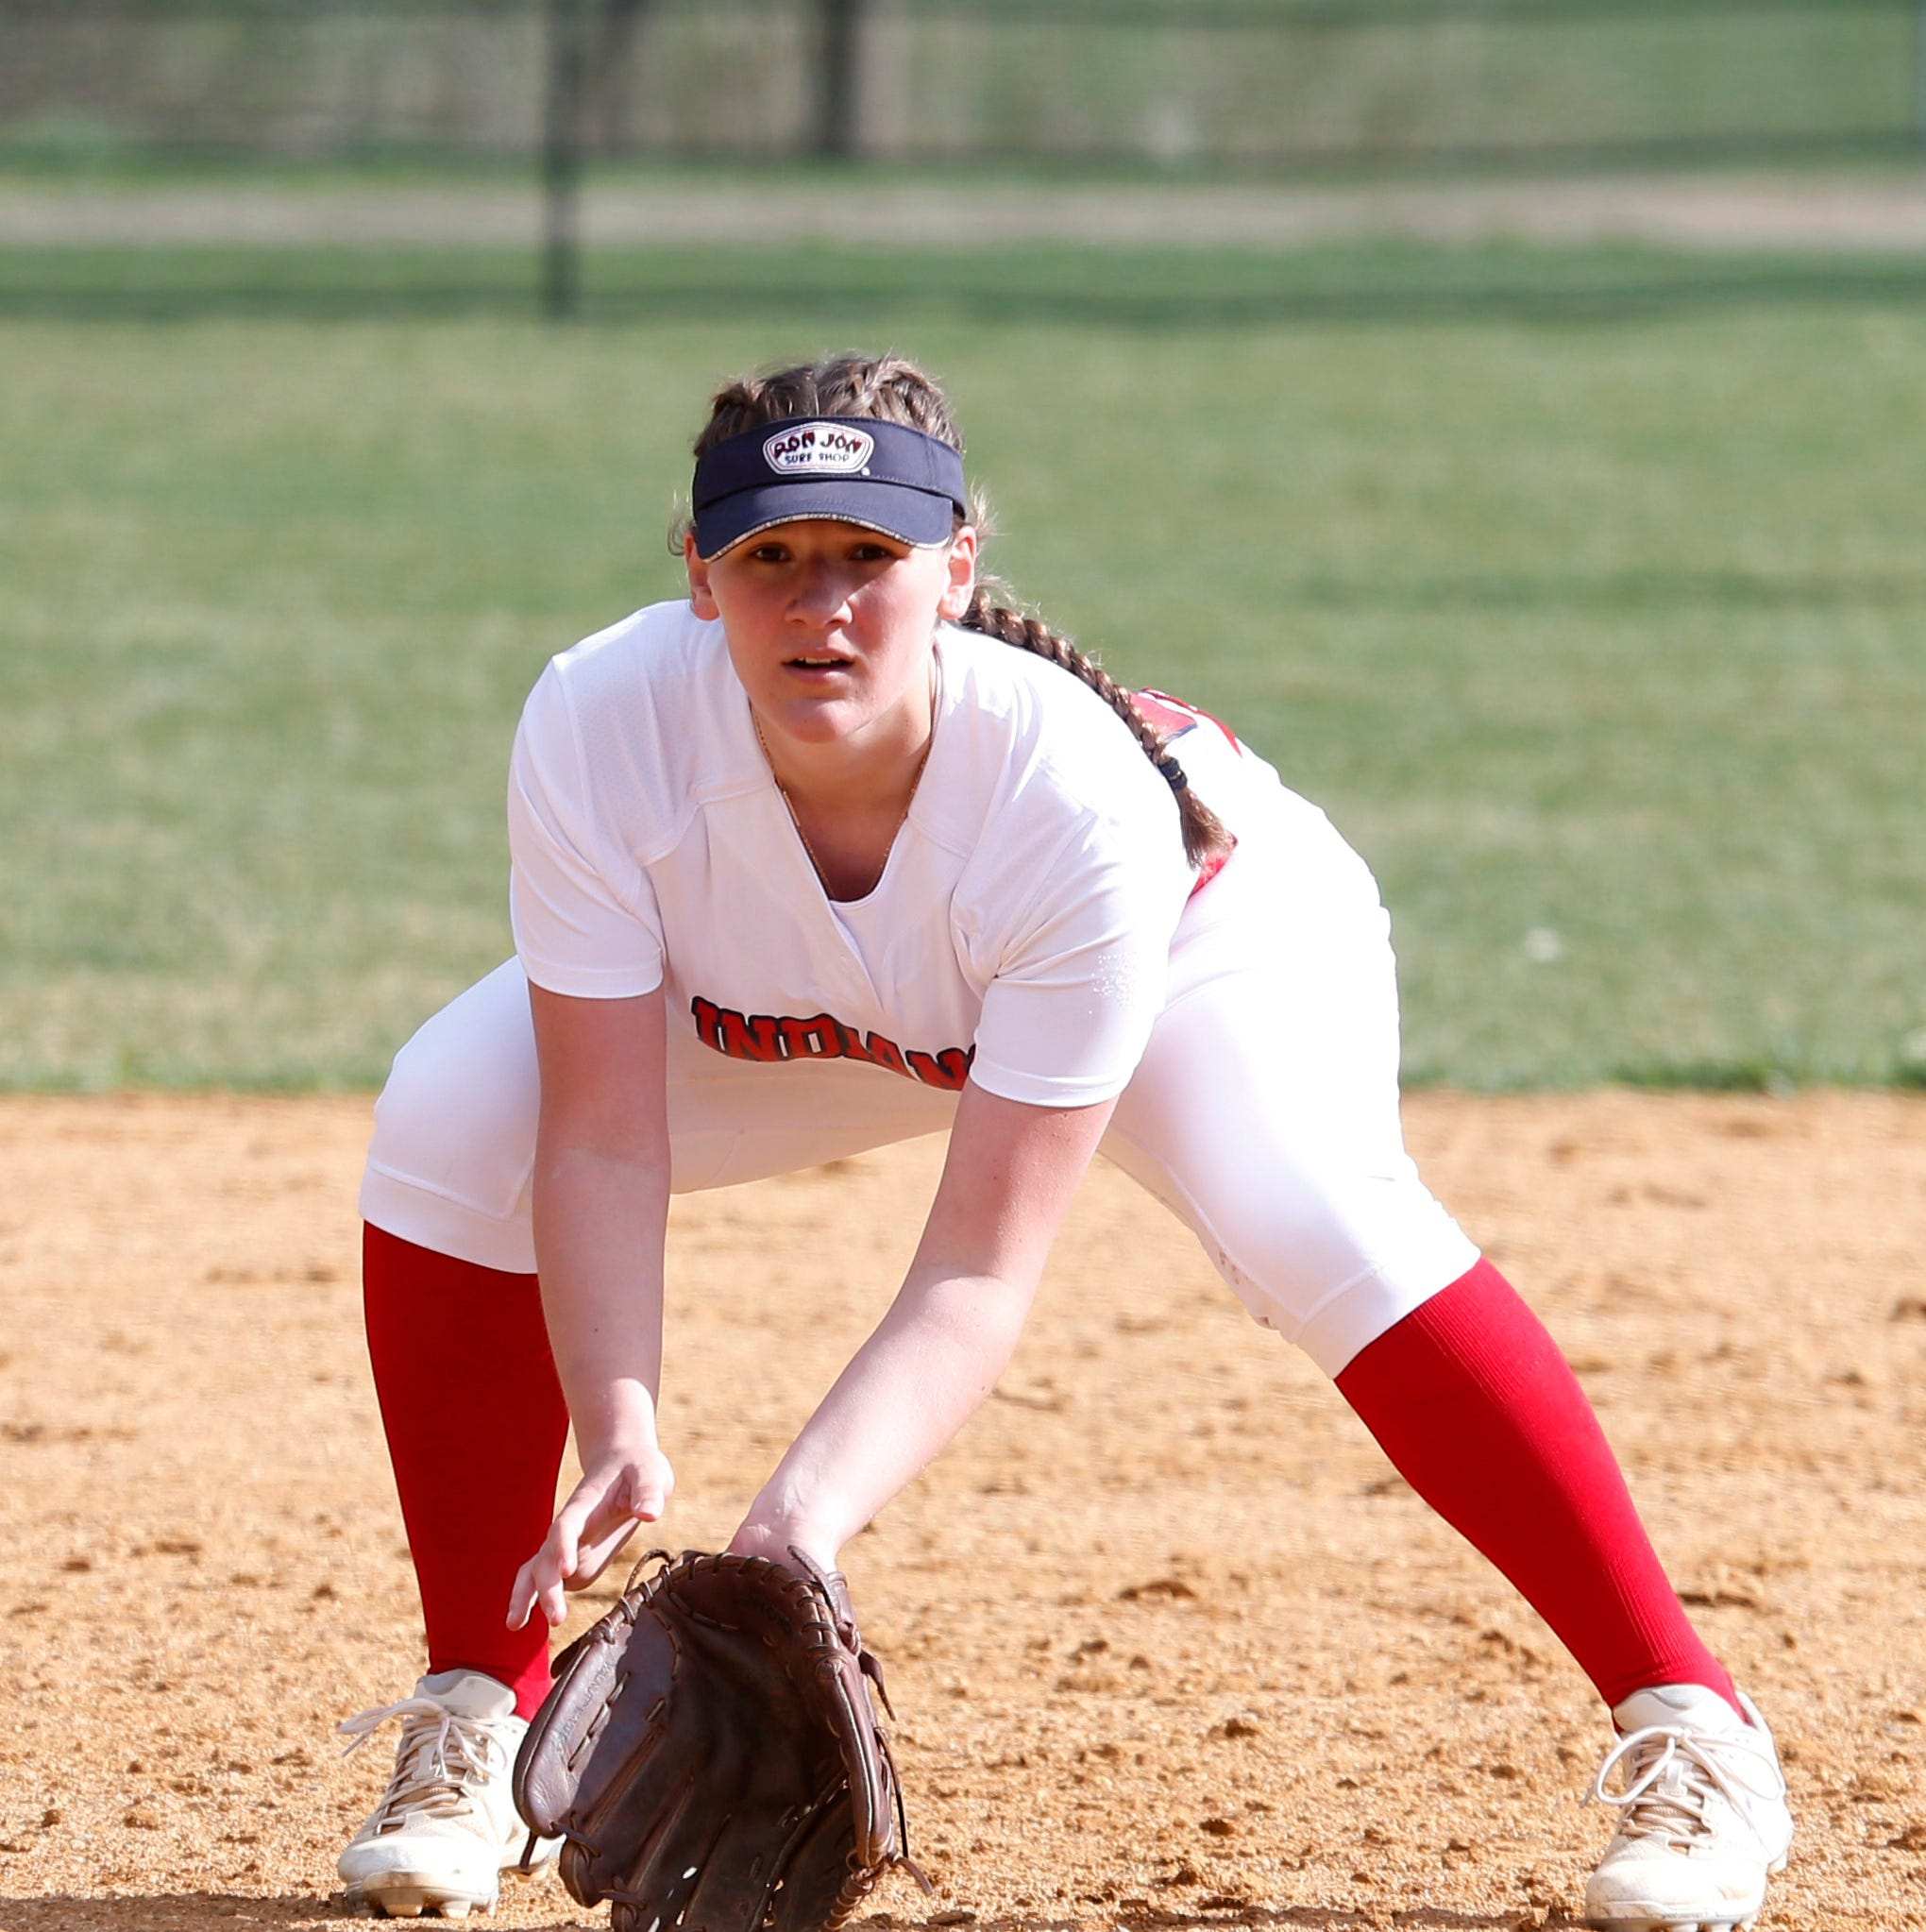 Ketcham's Van Benschoten, after surviving deadly illness, returns to softball